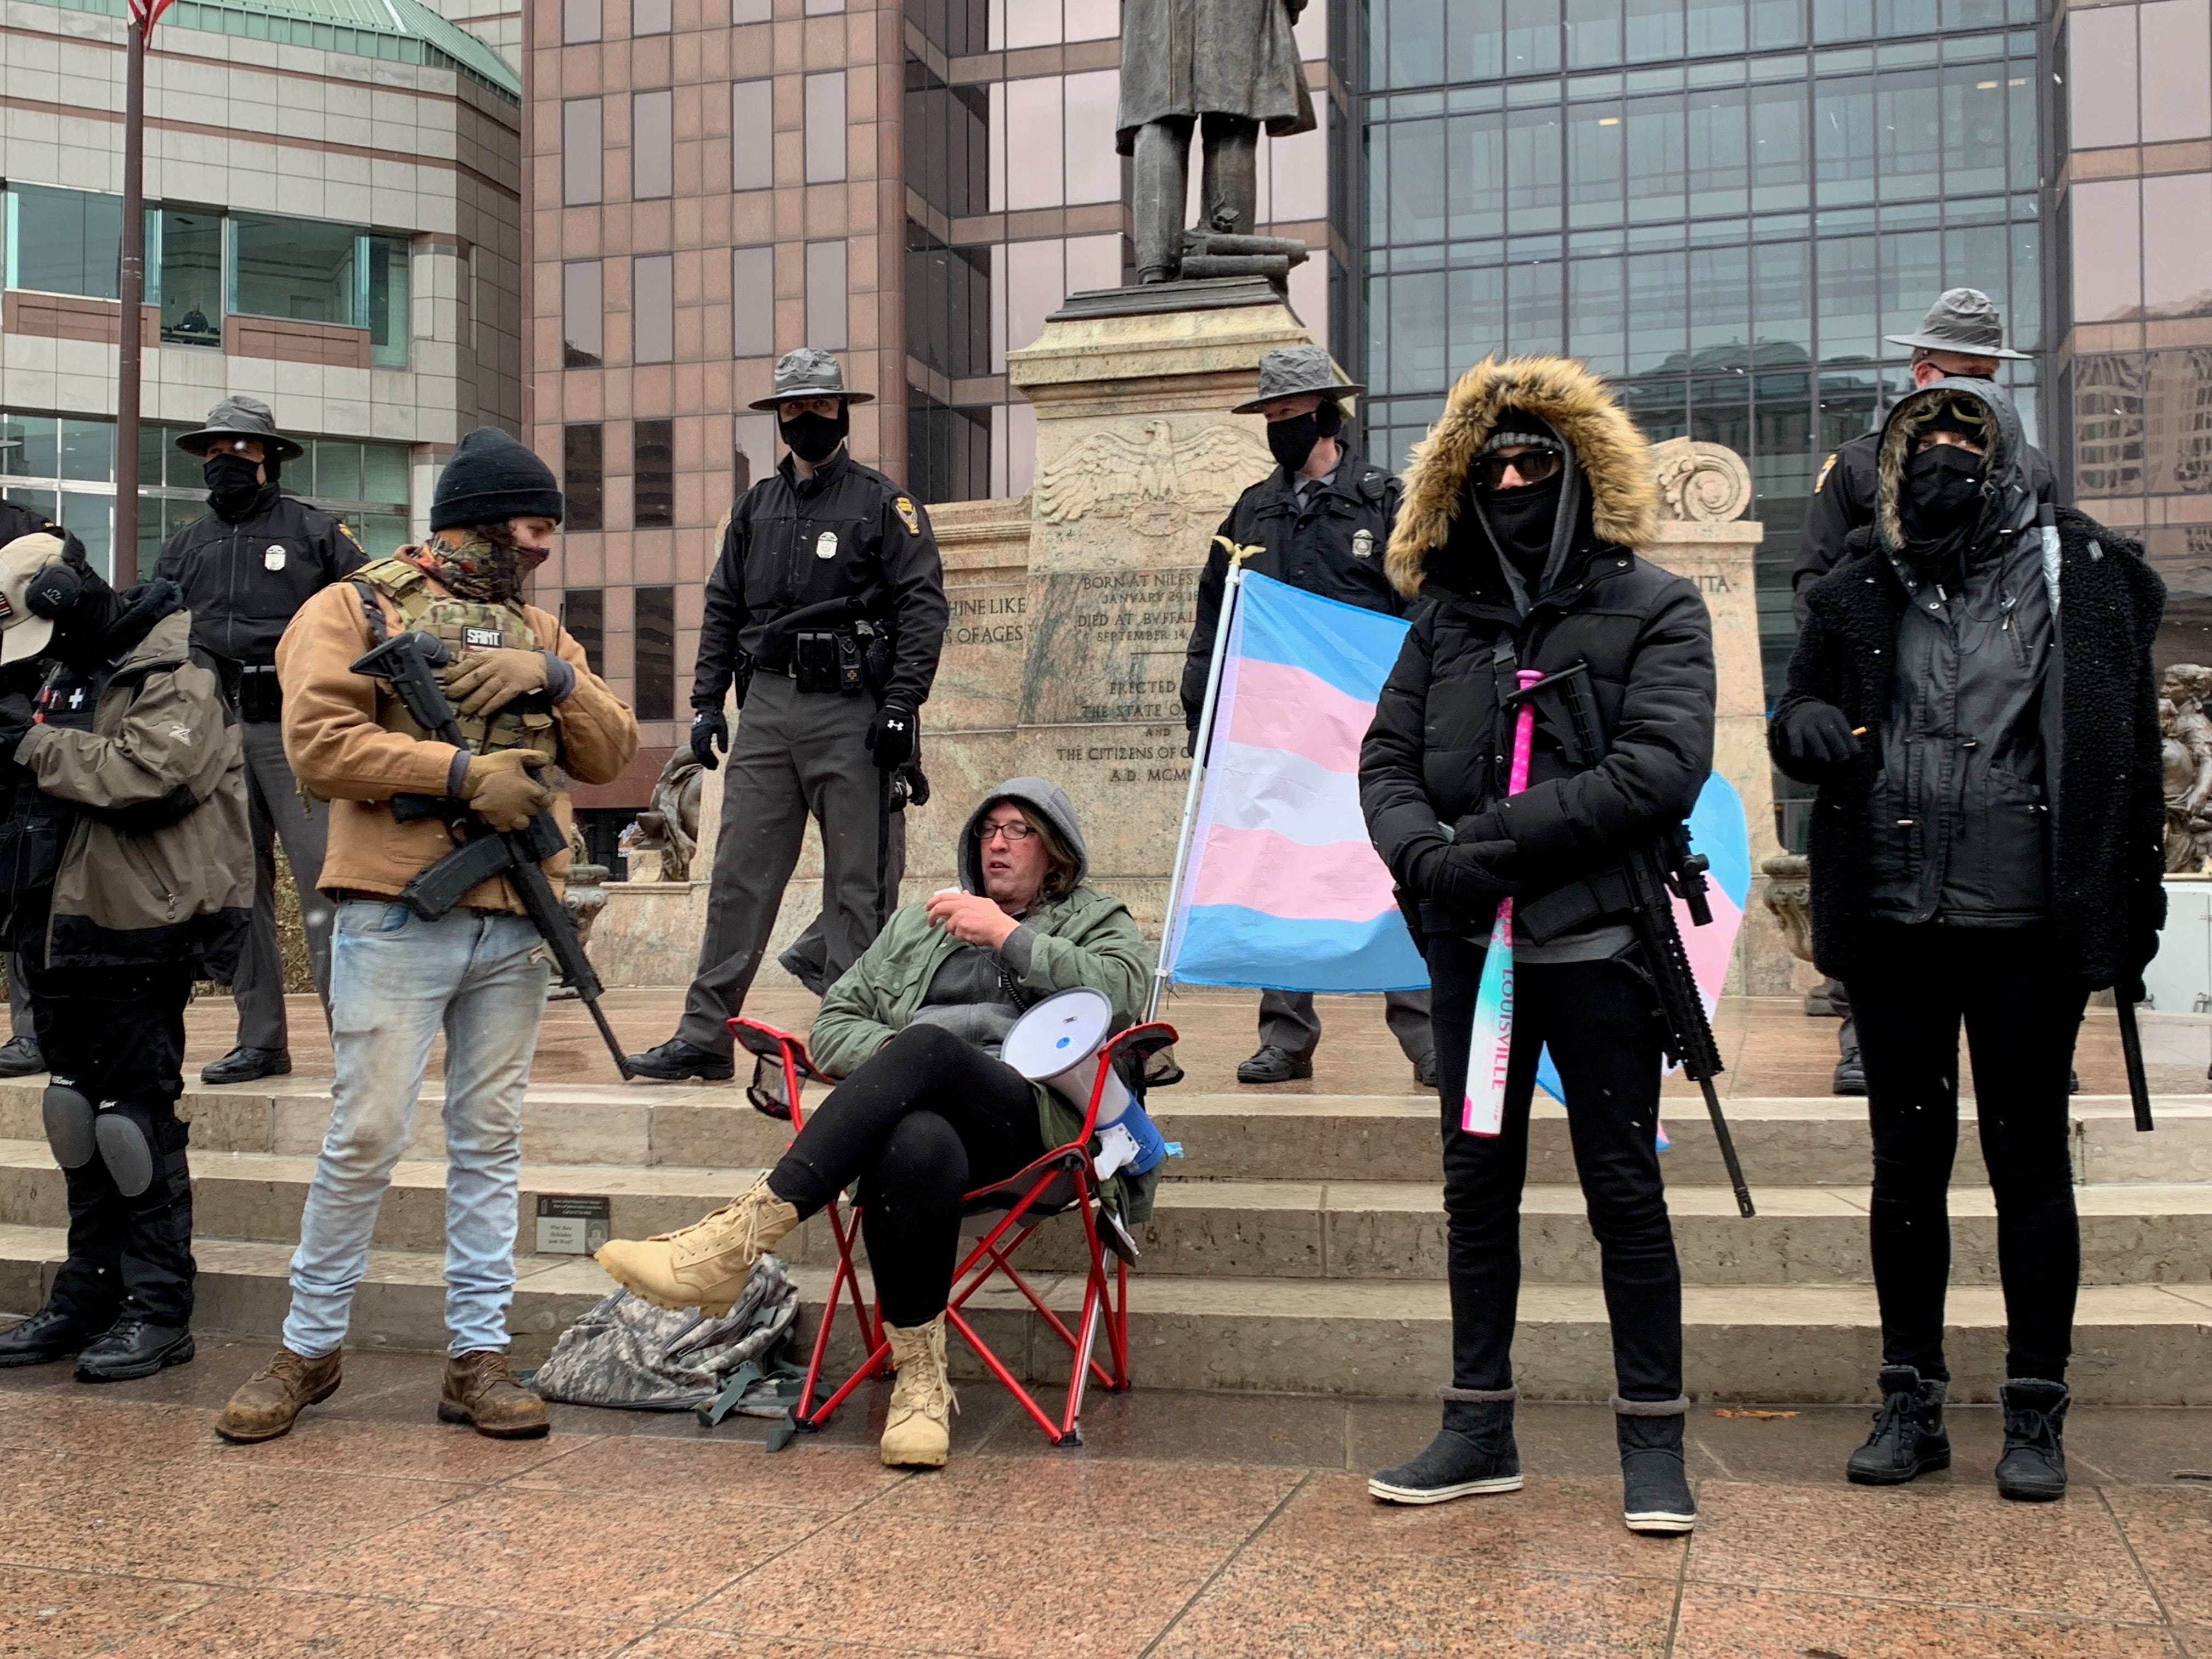 """Dan Werts of Logan County, Ohio, speaks into a megaphone while sitting in front of the Ohio Statehouse in a chair with the Trans Pride flag attached on Sunday, Jan. 17, 2021. """"Just a reminder, it was not antifa who raided the Capitol, it was Trump supporters,"""" Werts said. """"You have the audacity to try and rewrite history and make yourselves look like the good guys. That's pathetic."""""""